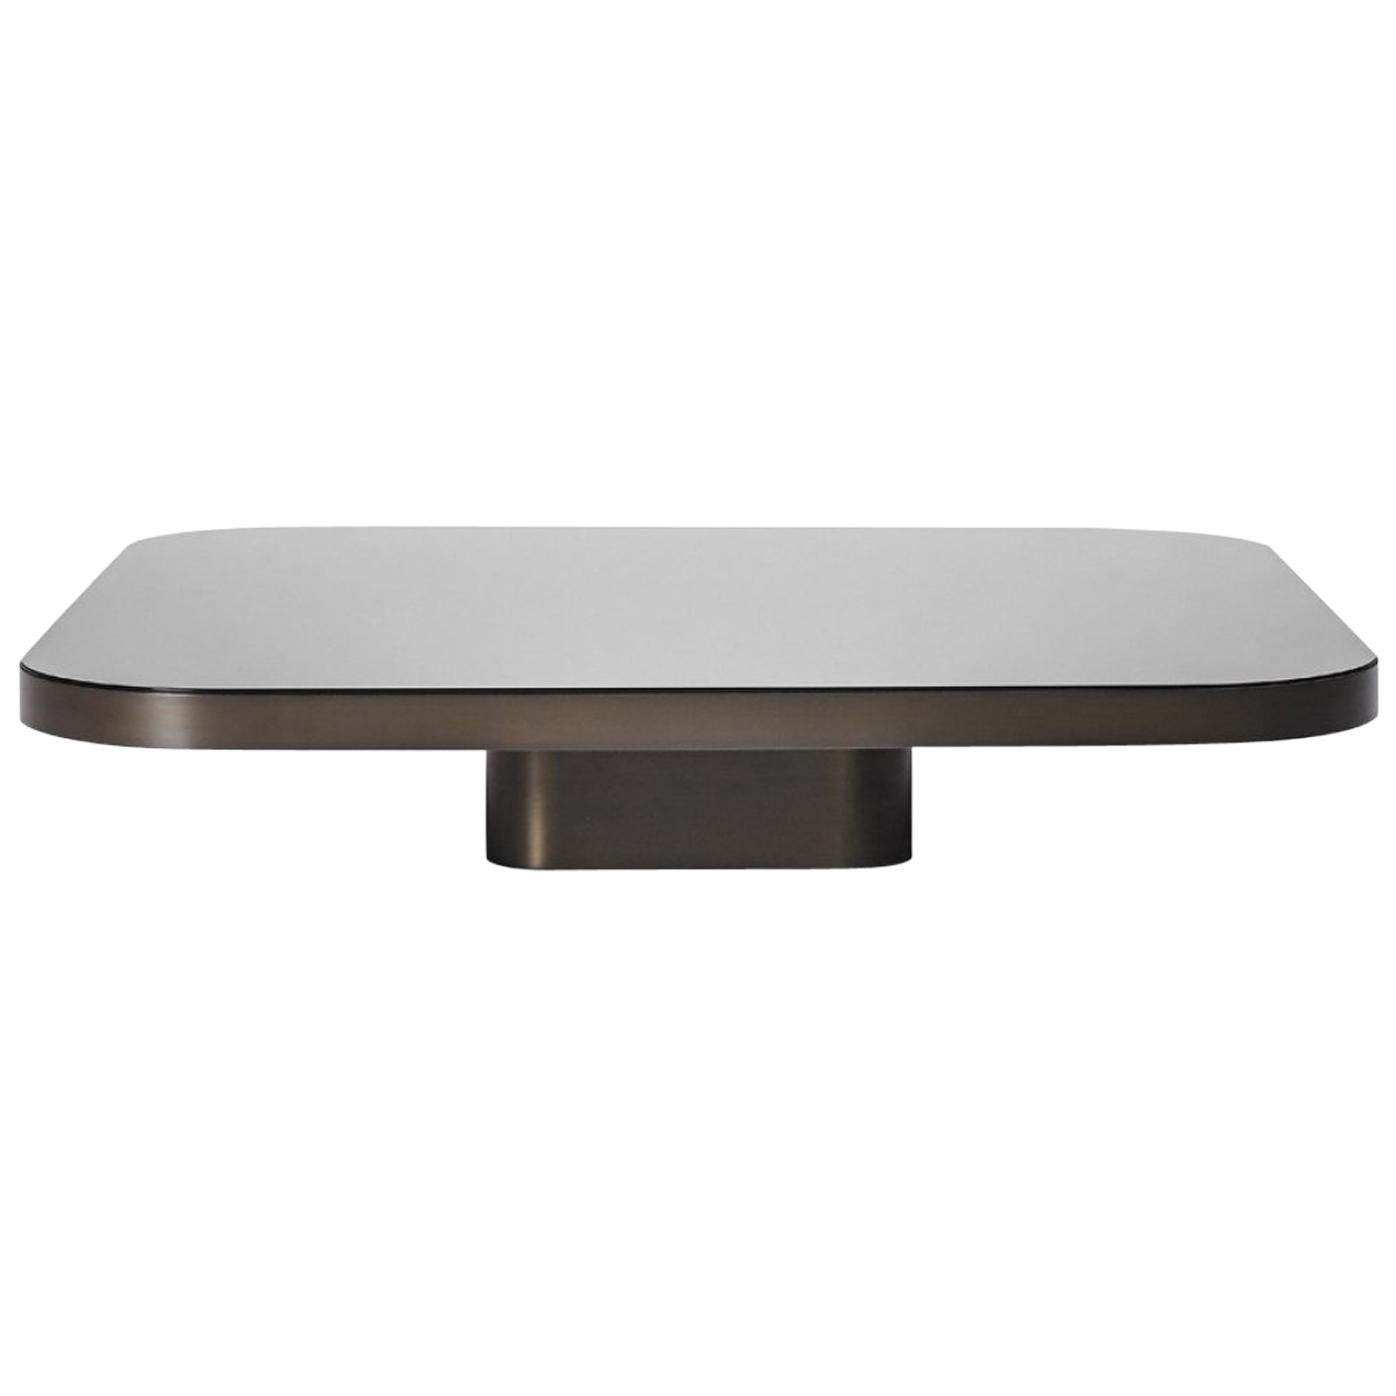 ClassiCon Bow Coffee Table No. 4 by Guilherme Torres